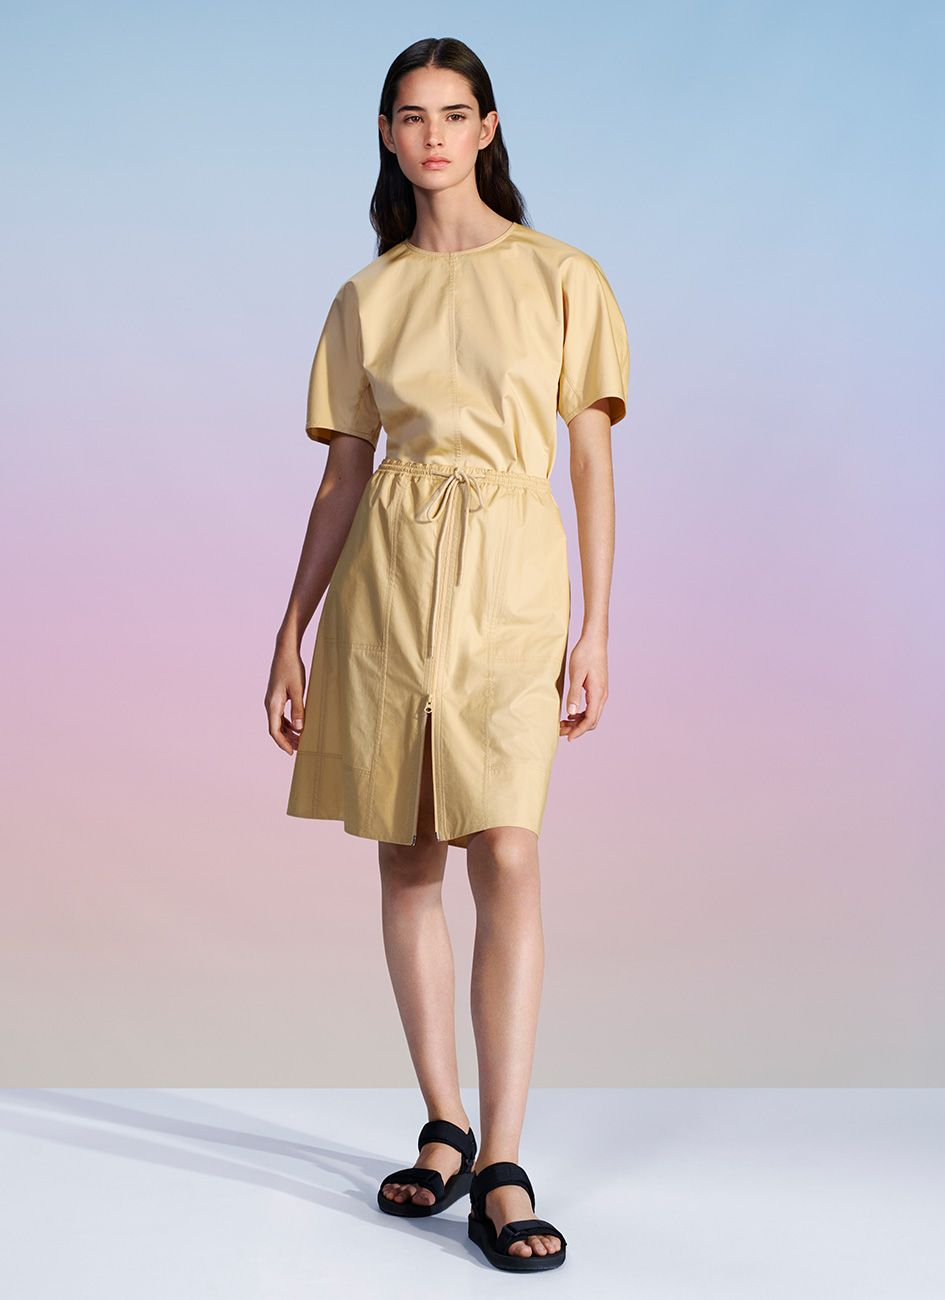 Forum on this topic: Uniqlo SS15 Linen Collection, uniqlo-ss15-linen-collection/